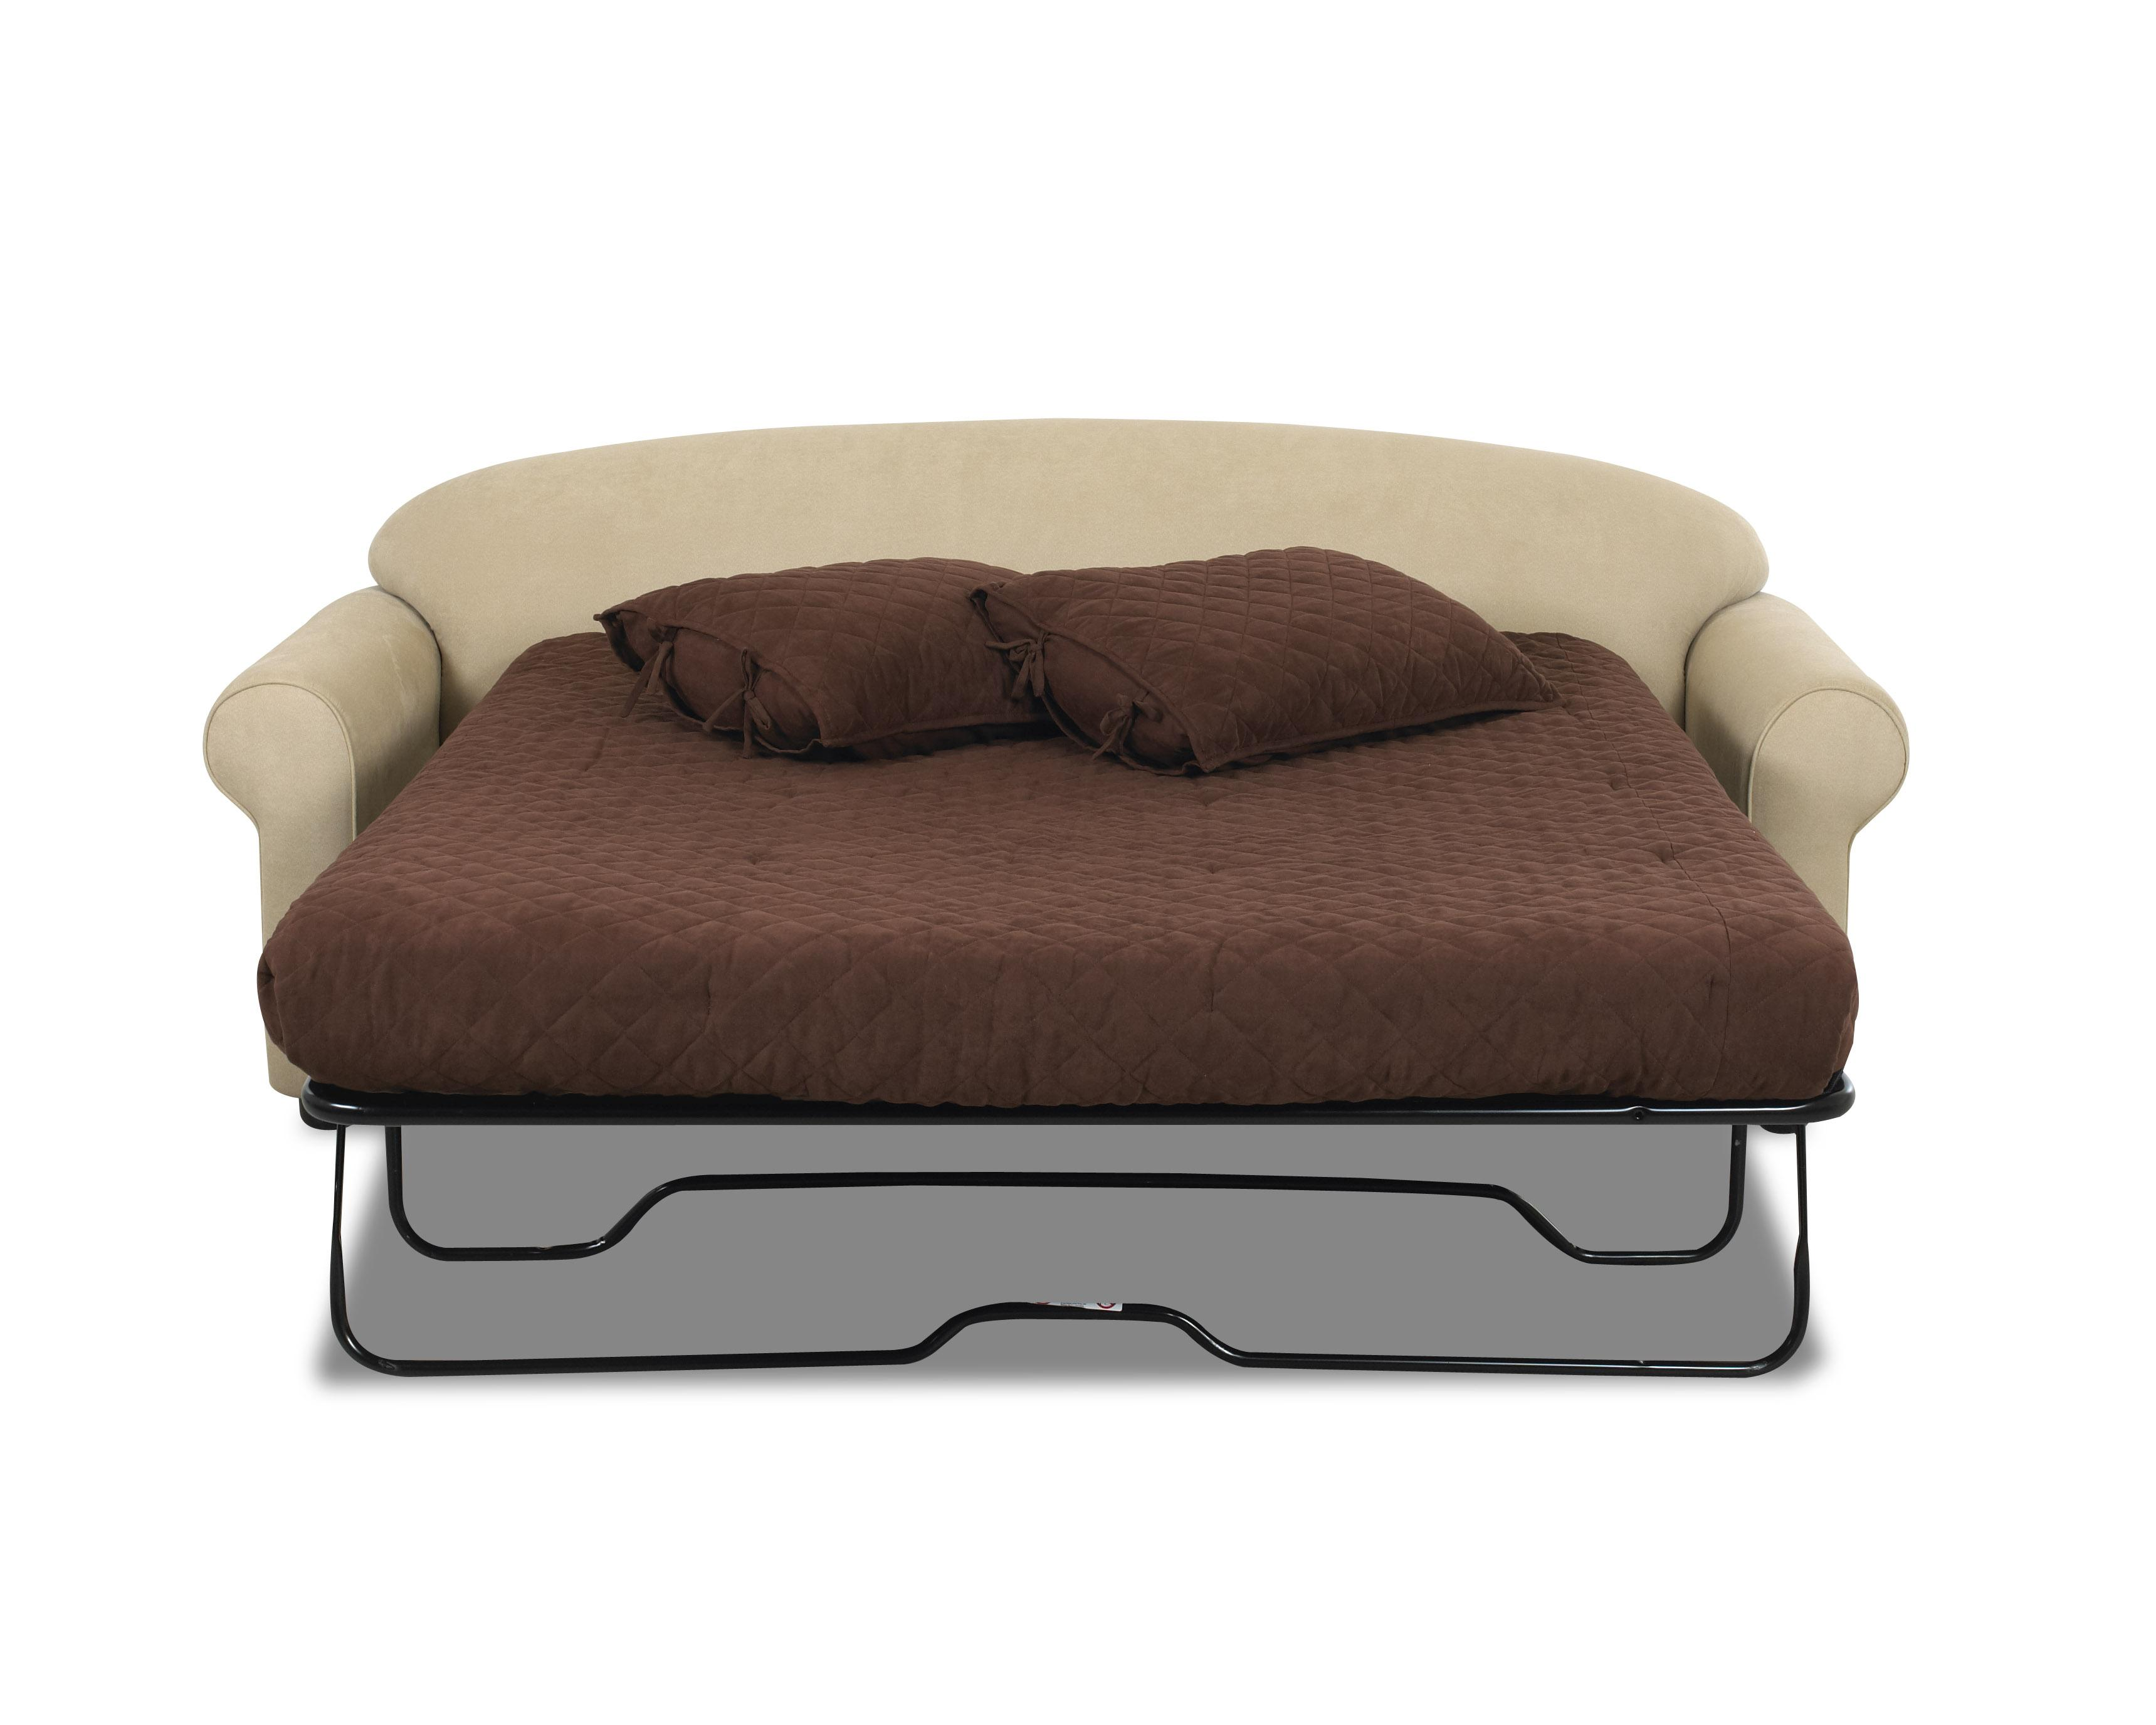 Klaussner Possibilities Queen Sofa Sleeper Item Number 500 Qlsp